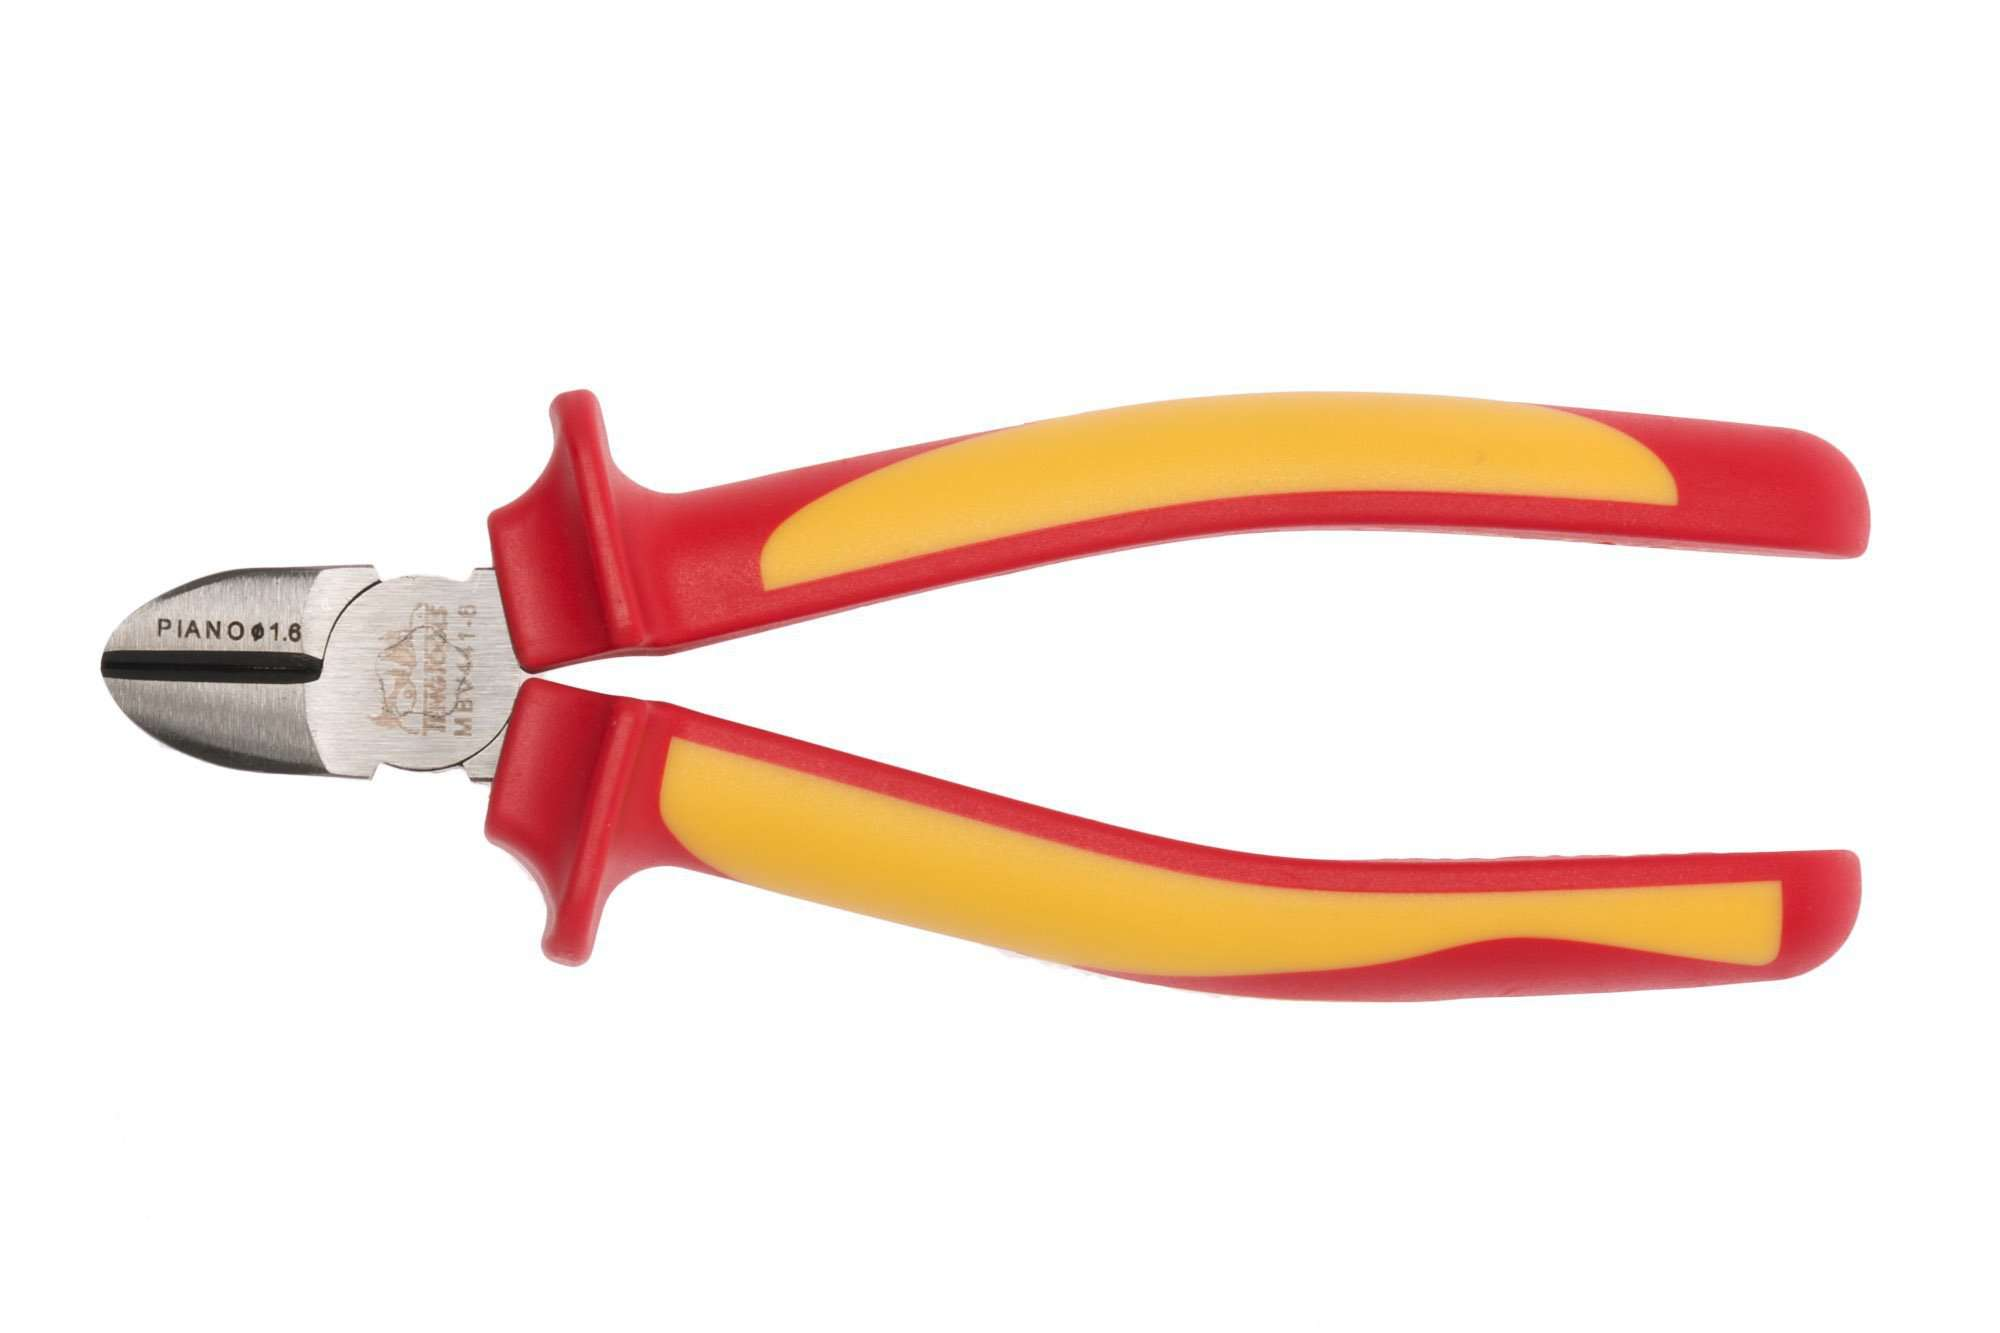 Teng Tools 6 Inch 1000 Volt Insulated Side Cutting Pliers - MBV441-6